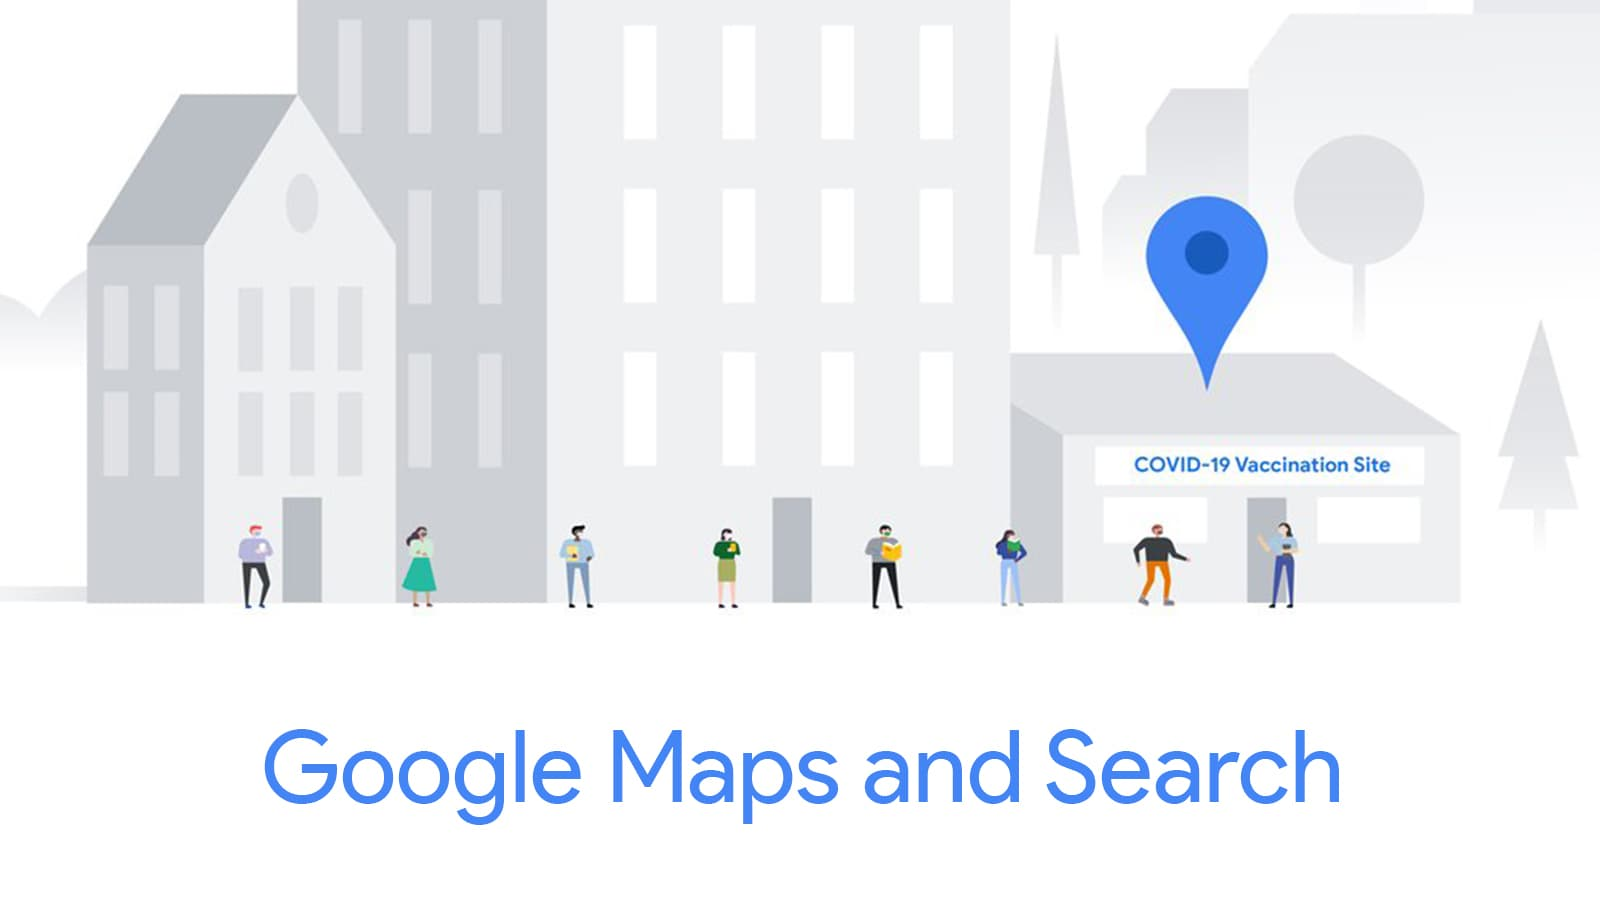 Google to show vaccination locations in Maps and Search, and optimize deliveries using AI